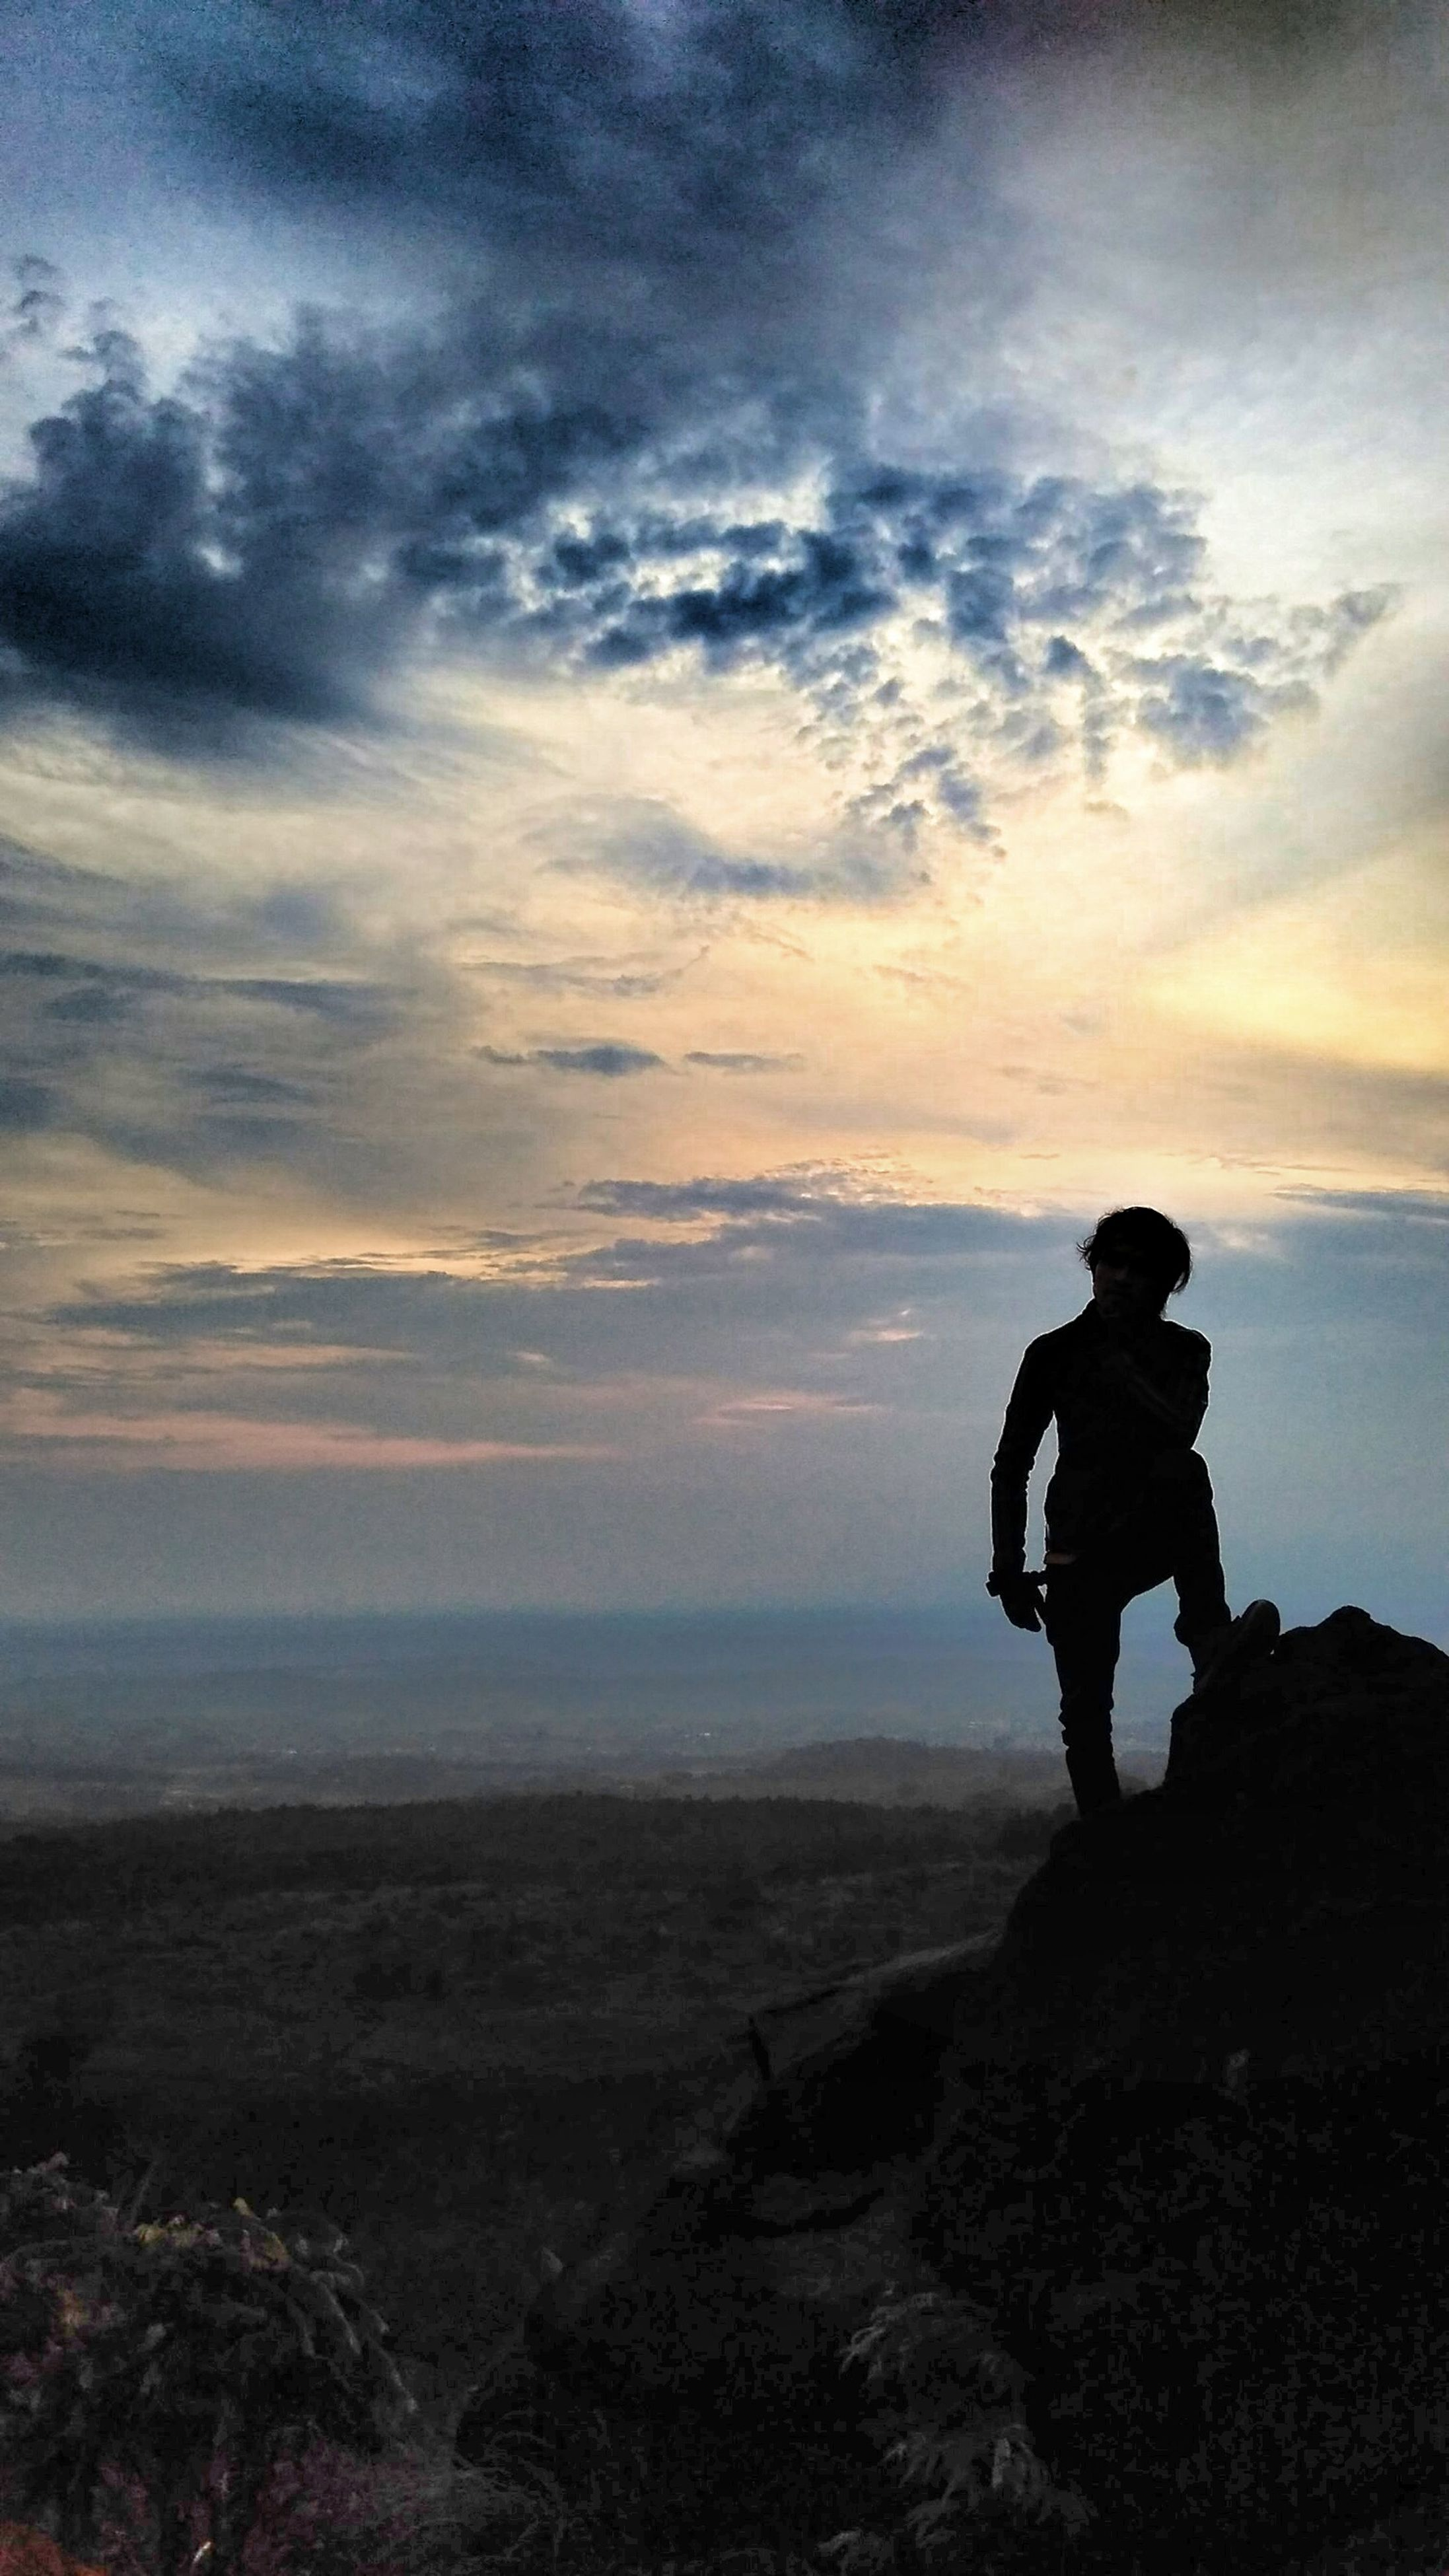 lifestyles, sky, leisure activity, full length, men, cloud - sky, scenics, beauty in nature, standing, tranquil scene, tranquility, rear view, landscape, nature, silhouette, getting away from it all, looking at view, rock - object